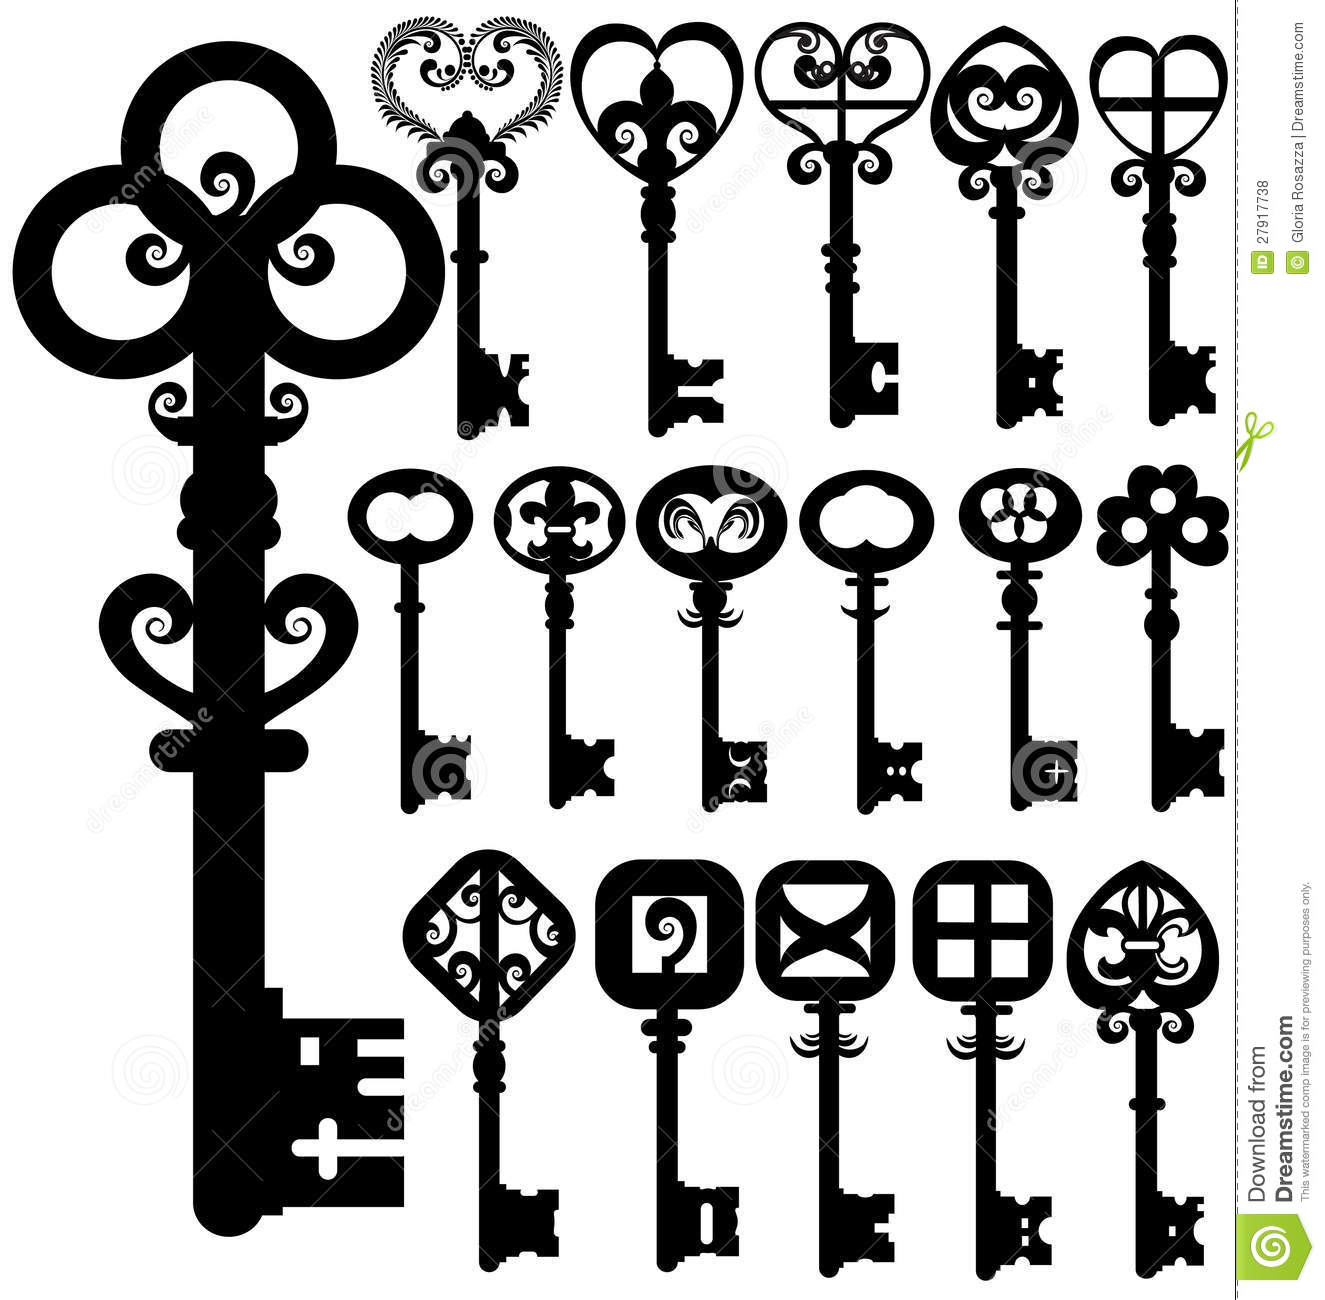 Old keys silhouettes